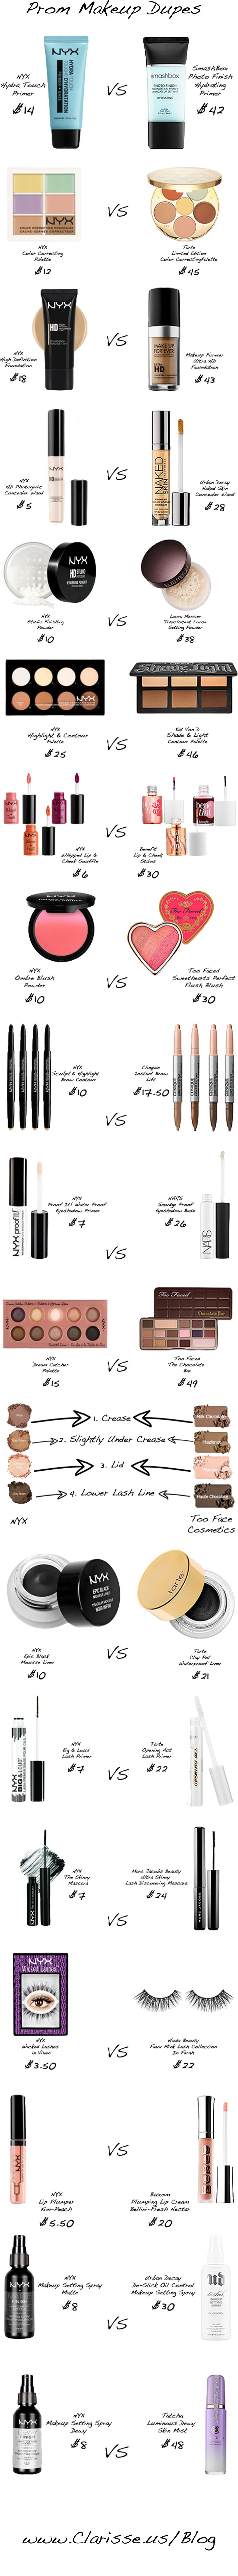 Do you love all those looks the beauty vlogger gurus show you how to do on youtube? Get those same great products but at half the price!! Click to read more about these amazing drugstore makeup dupes to create an AMAZING prom makeup look that will look great with any dress!! http://clarisse.us/blog @nyxcosmetics